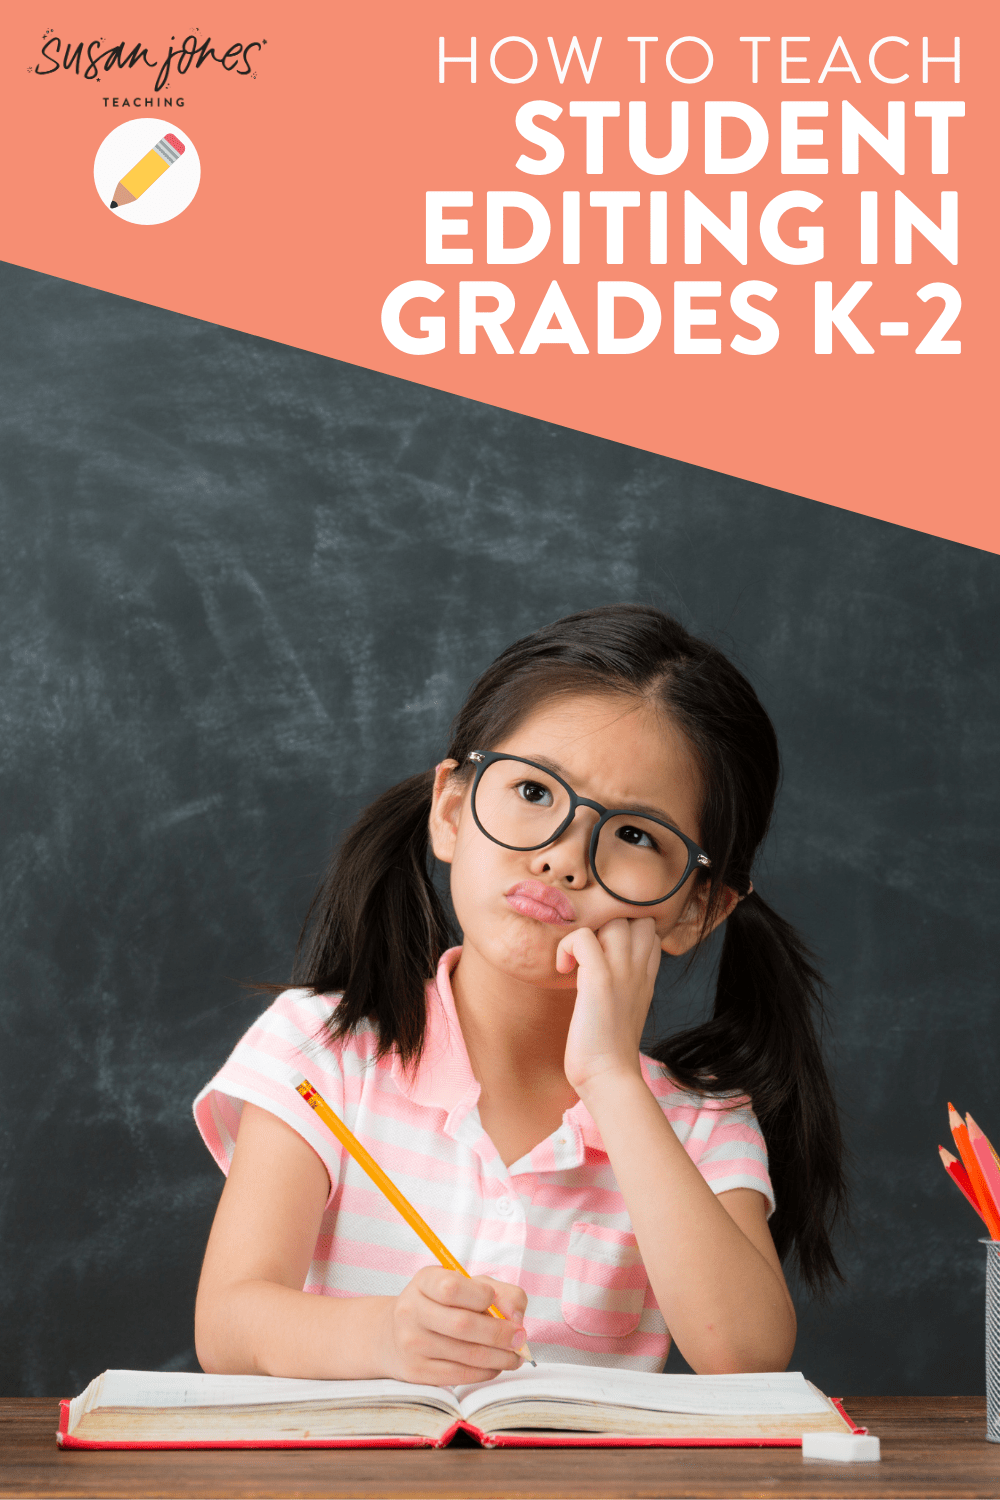 Wondering how to teach students to edit their own writing in grades K-2?! This blog post walks through some tips for teaching editing to students using editing checklists, partner editing, and sample passages!